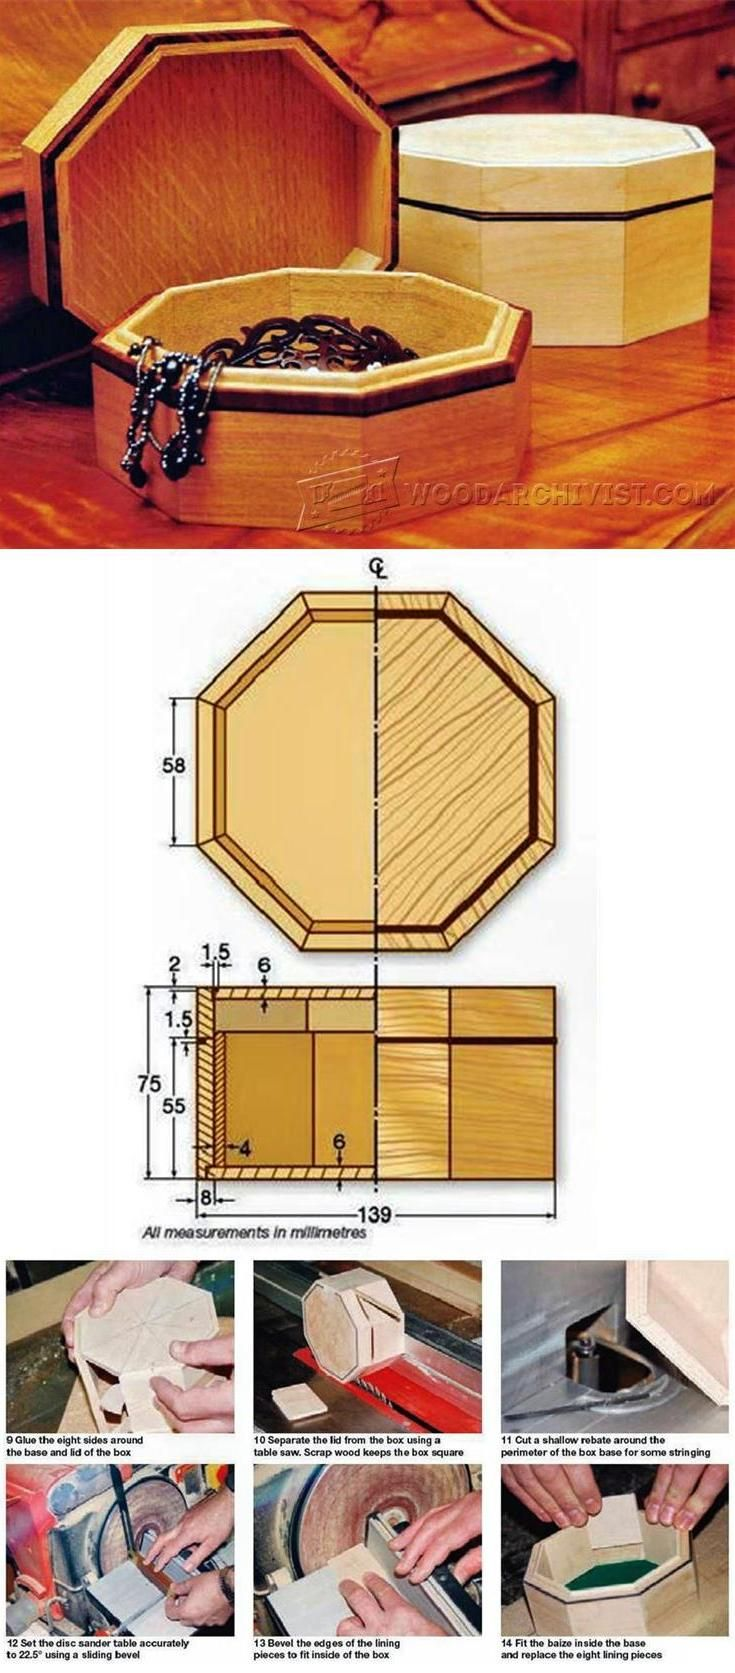 Wooden crib for sale las pinas - Octagonal Box Plan Woodworking Plans And Projects Woodarchivist Com